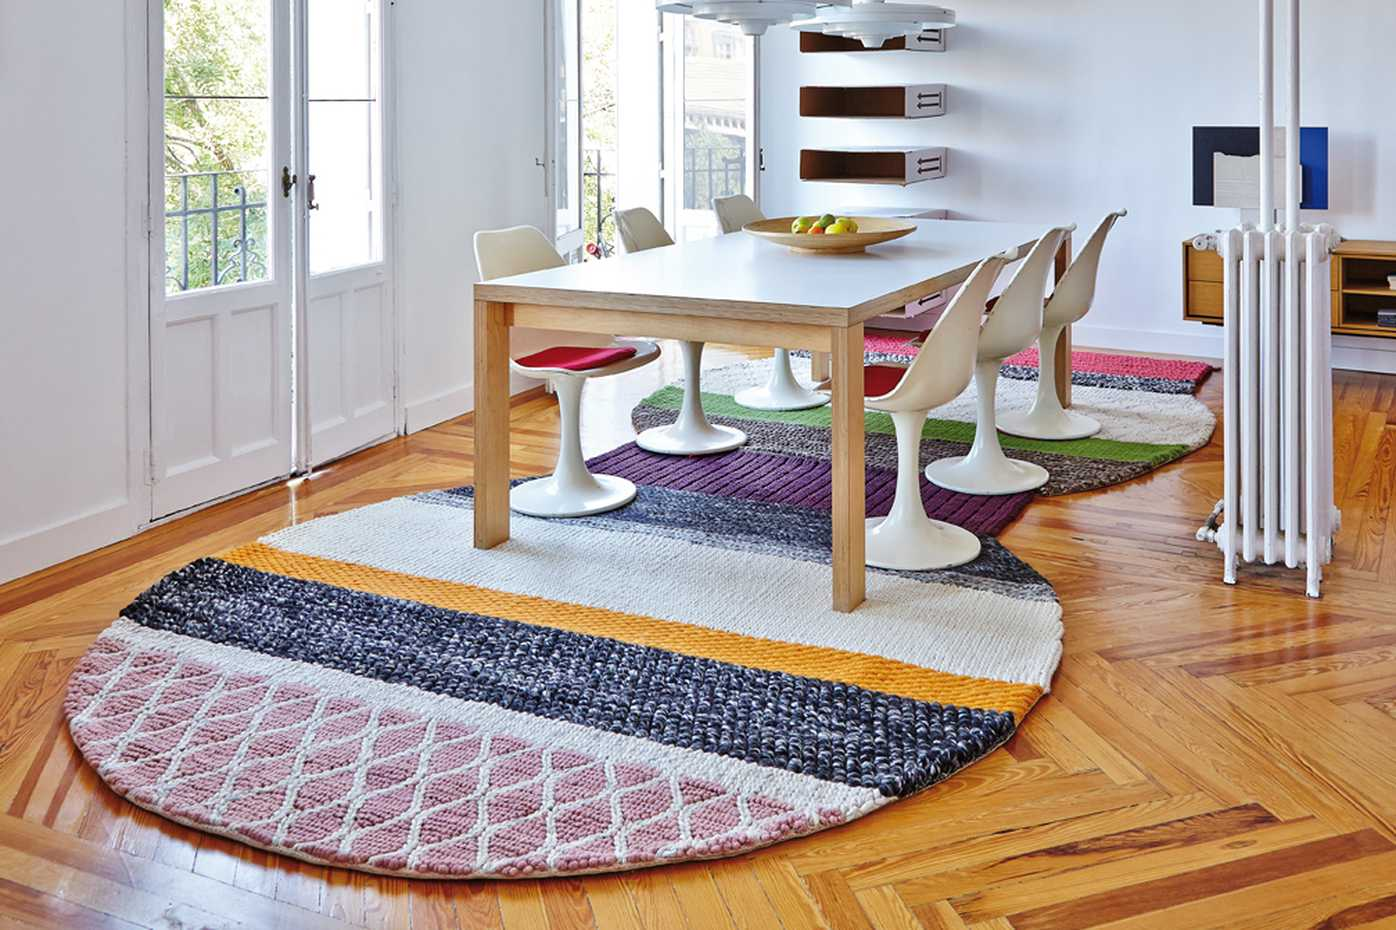 Mangas Original Rugs by Gan Rugs product image 8